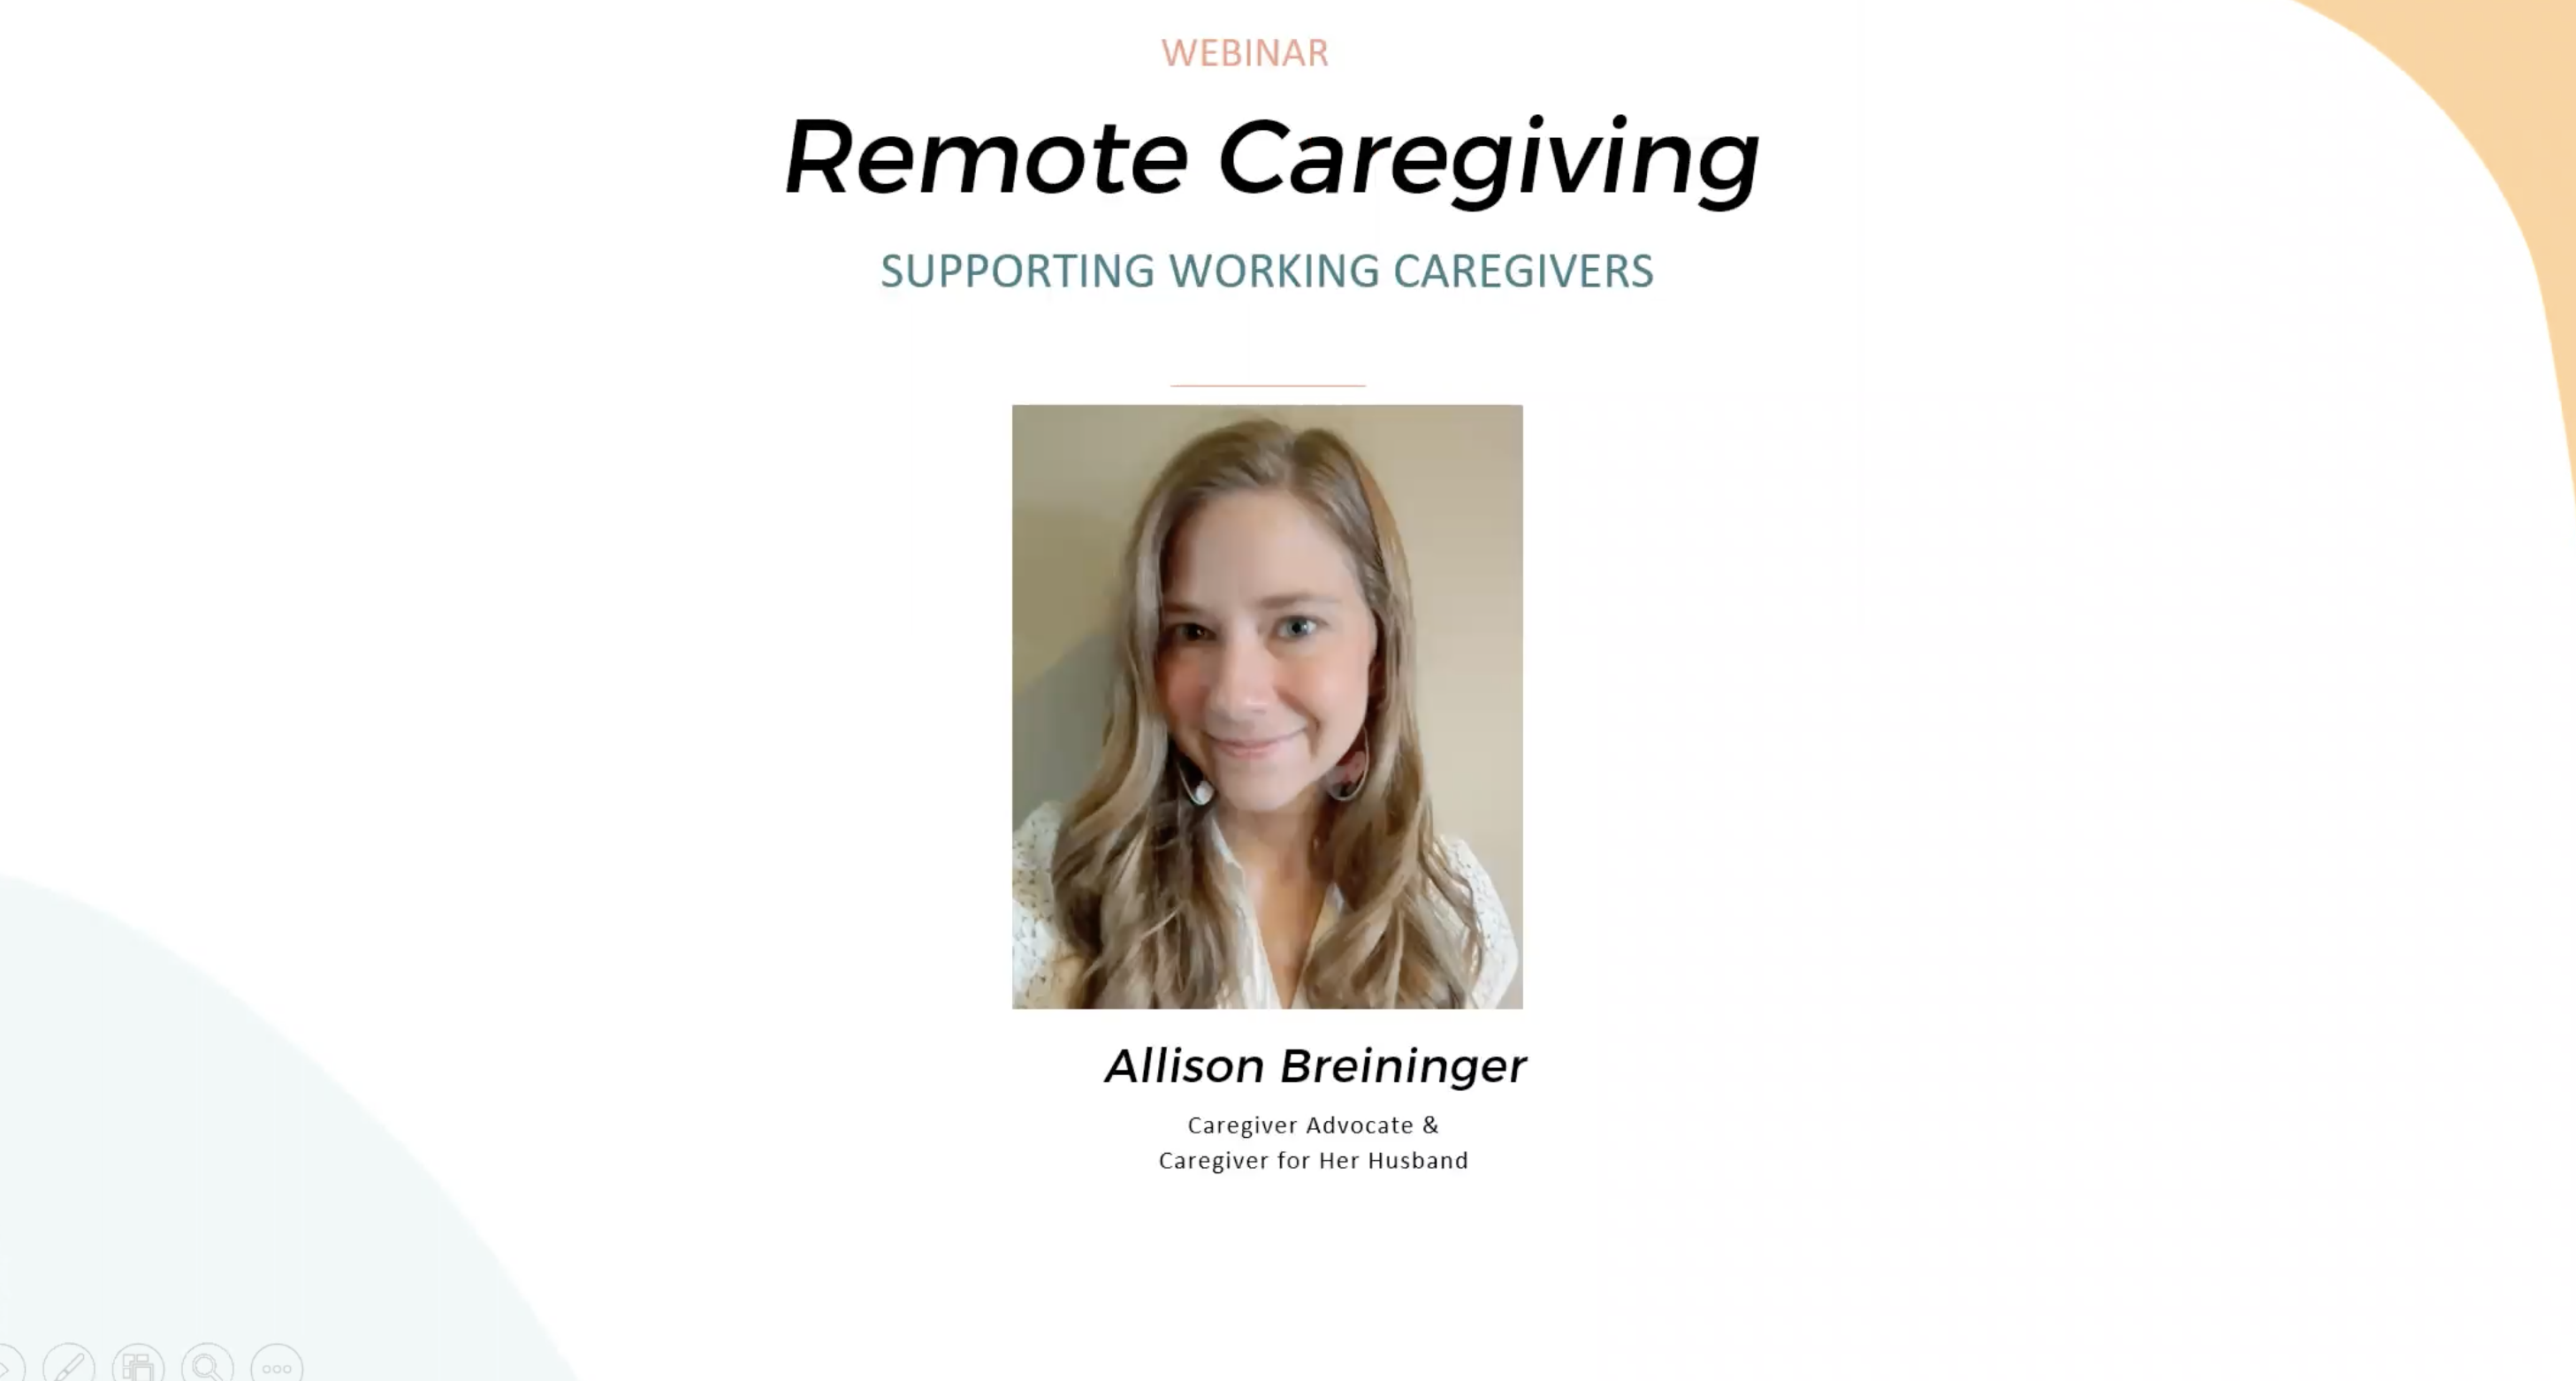 Watch: Remote Care: How to Caregive from a Distance